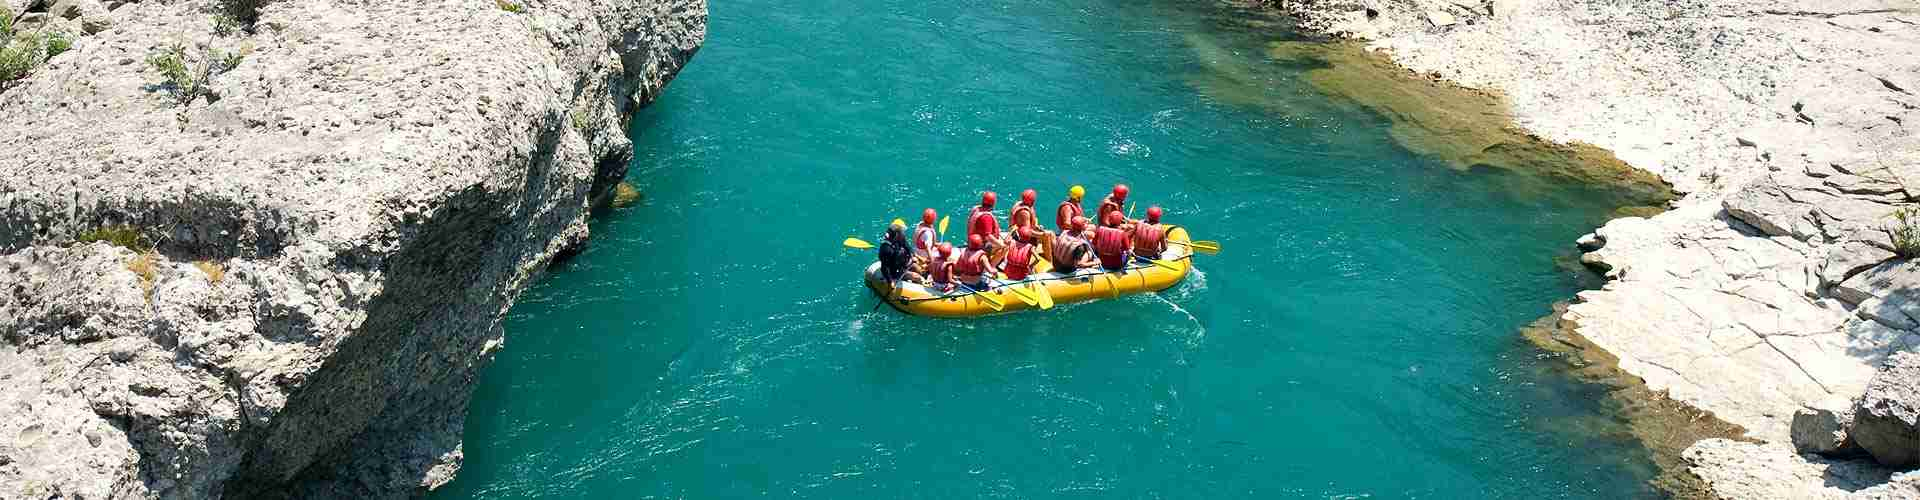 Rafting en Papatrigo